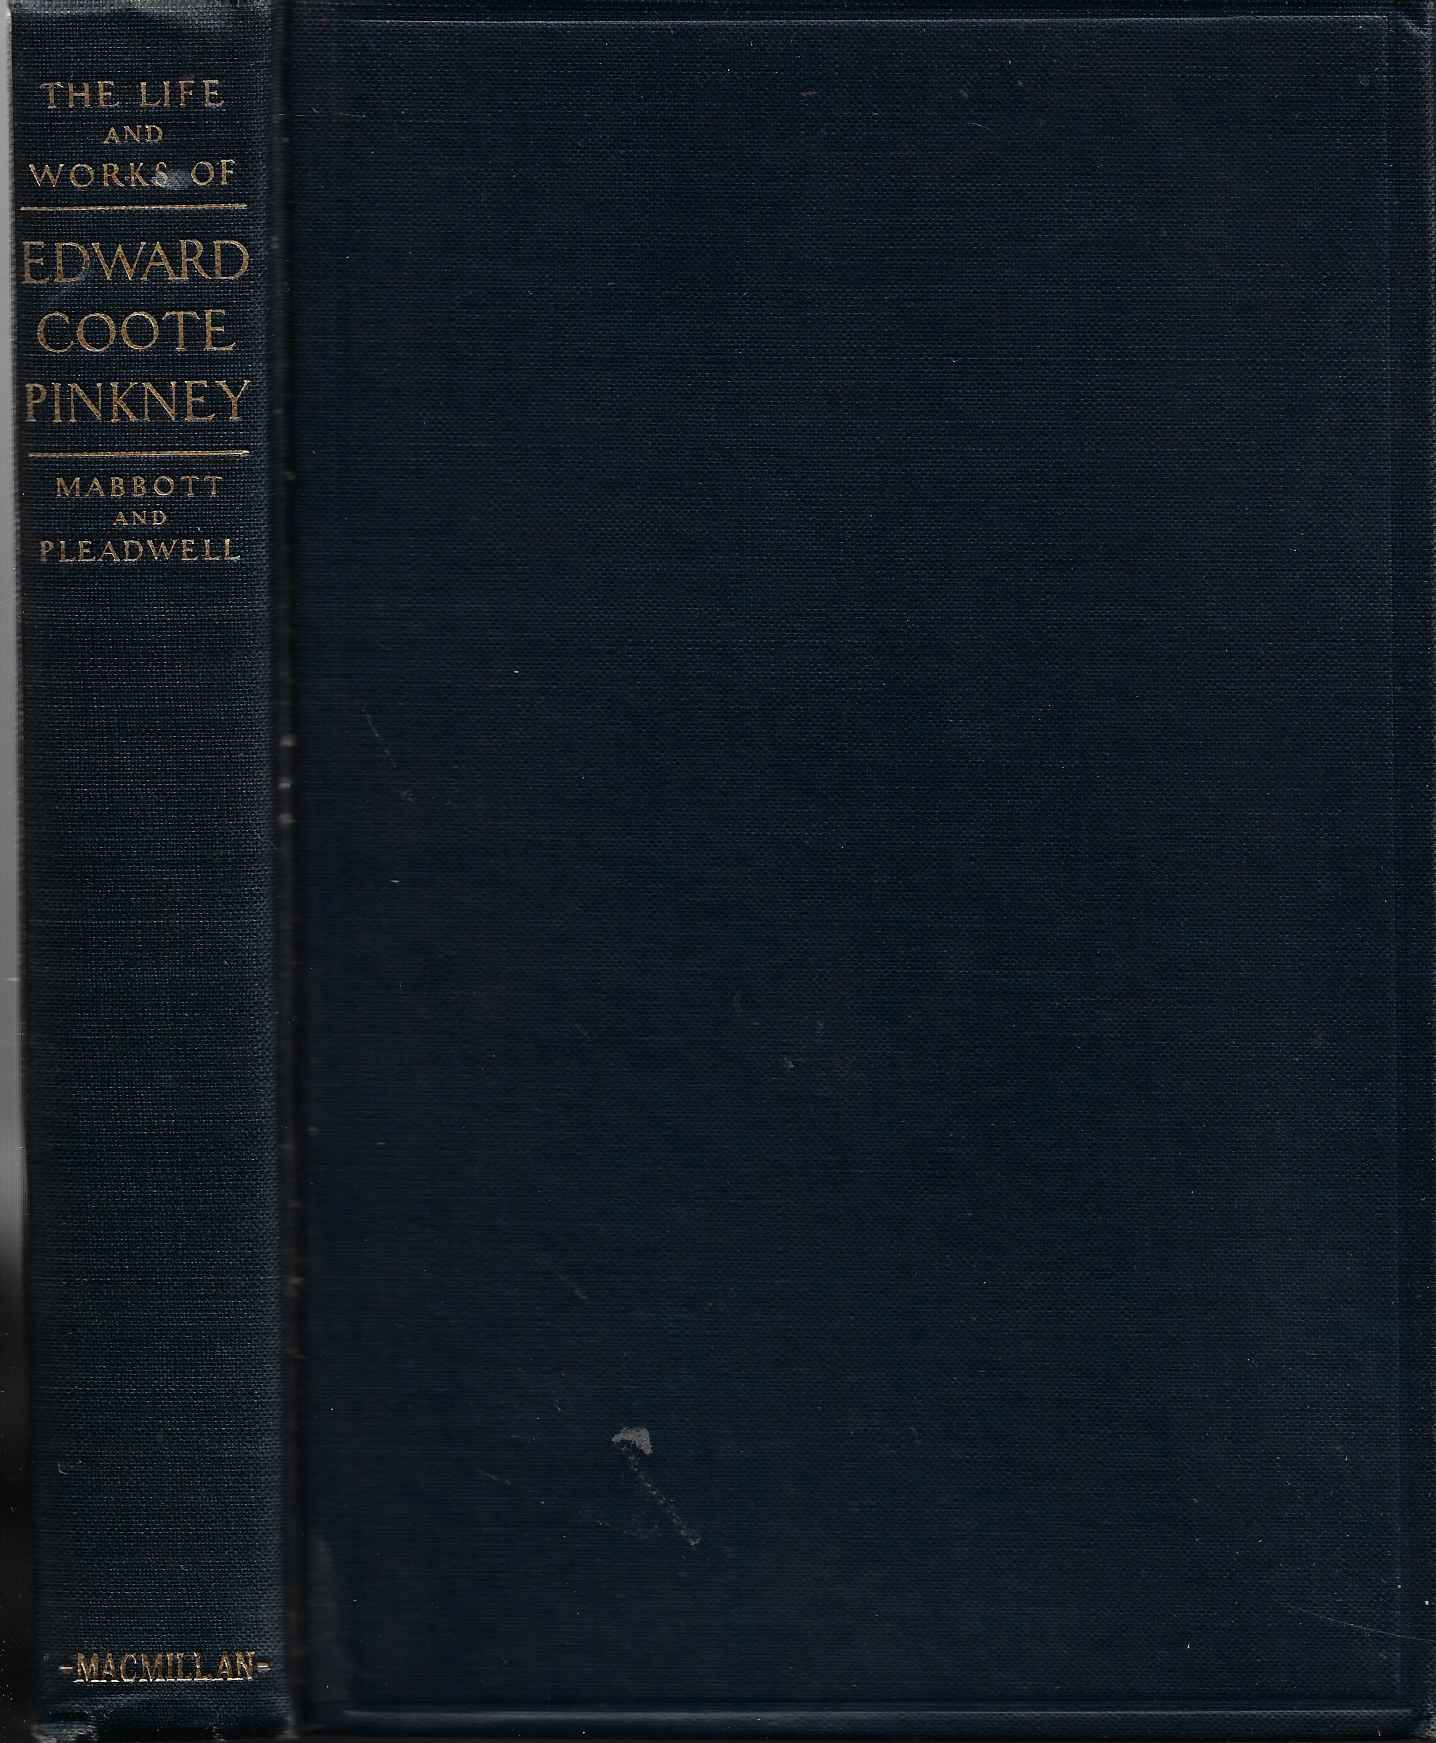 Image for The Life and Works of Edward Coote Pinkney A Memoir and Complete Text of his Literary Prose, Including Much Never Before Published